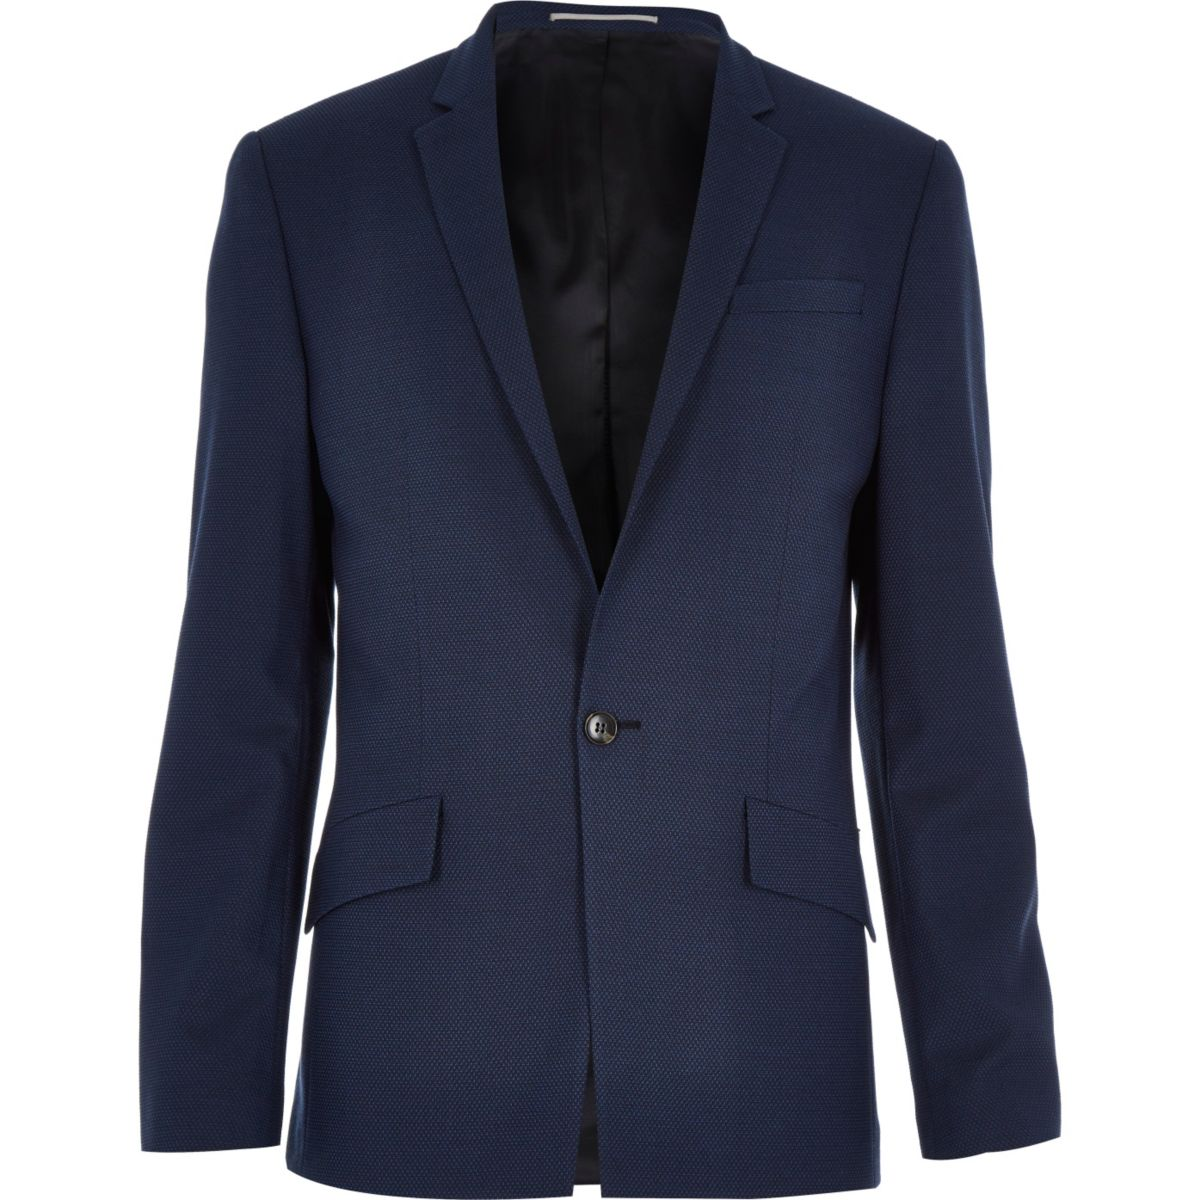 Navy blue tech slim suit jacket